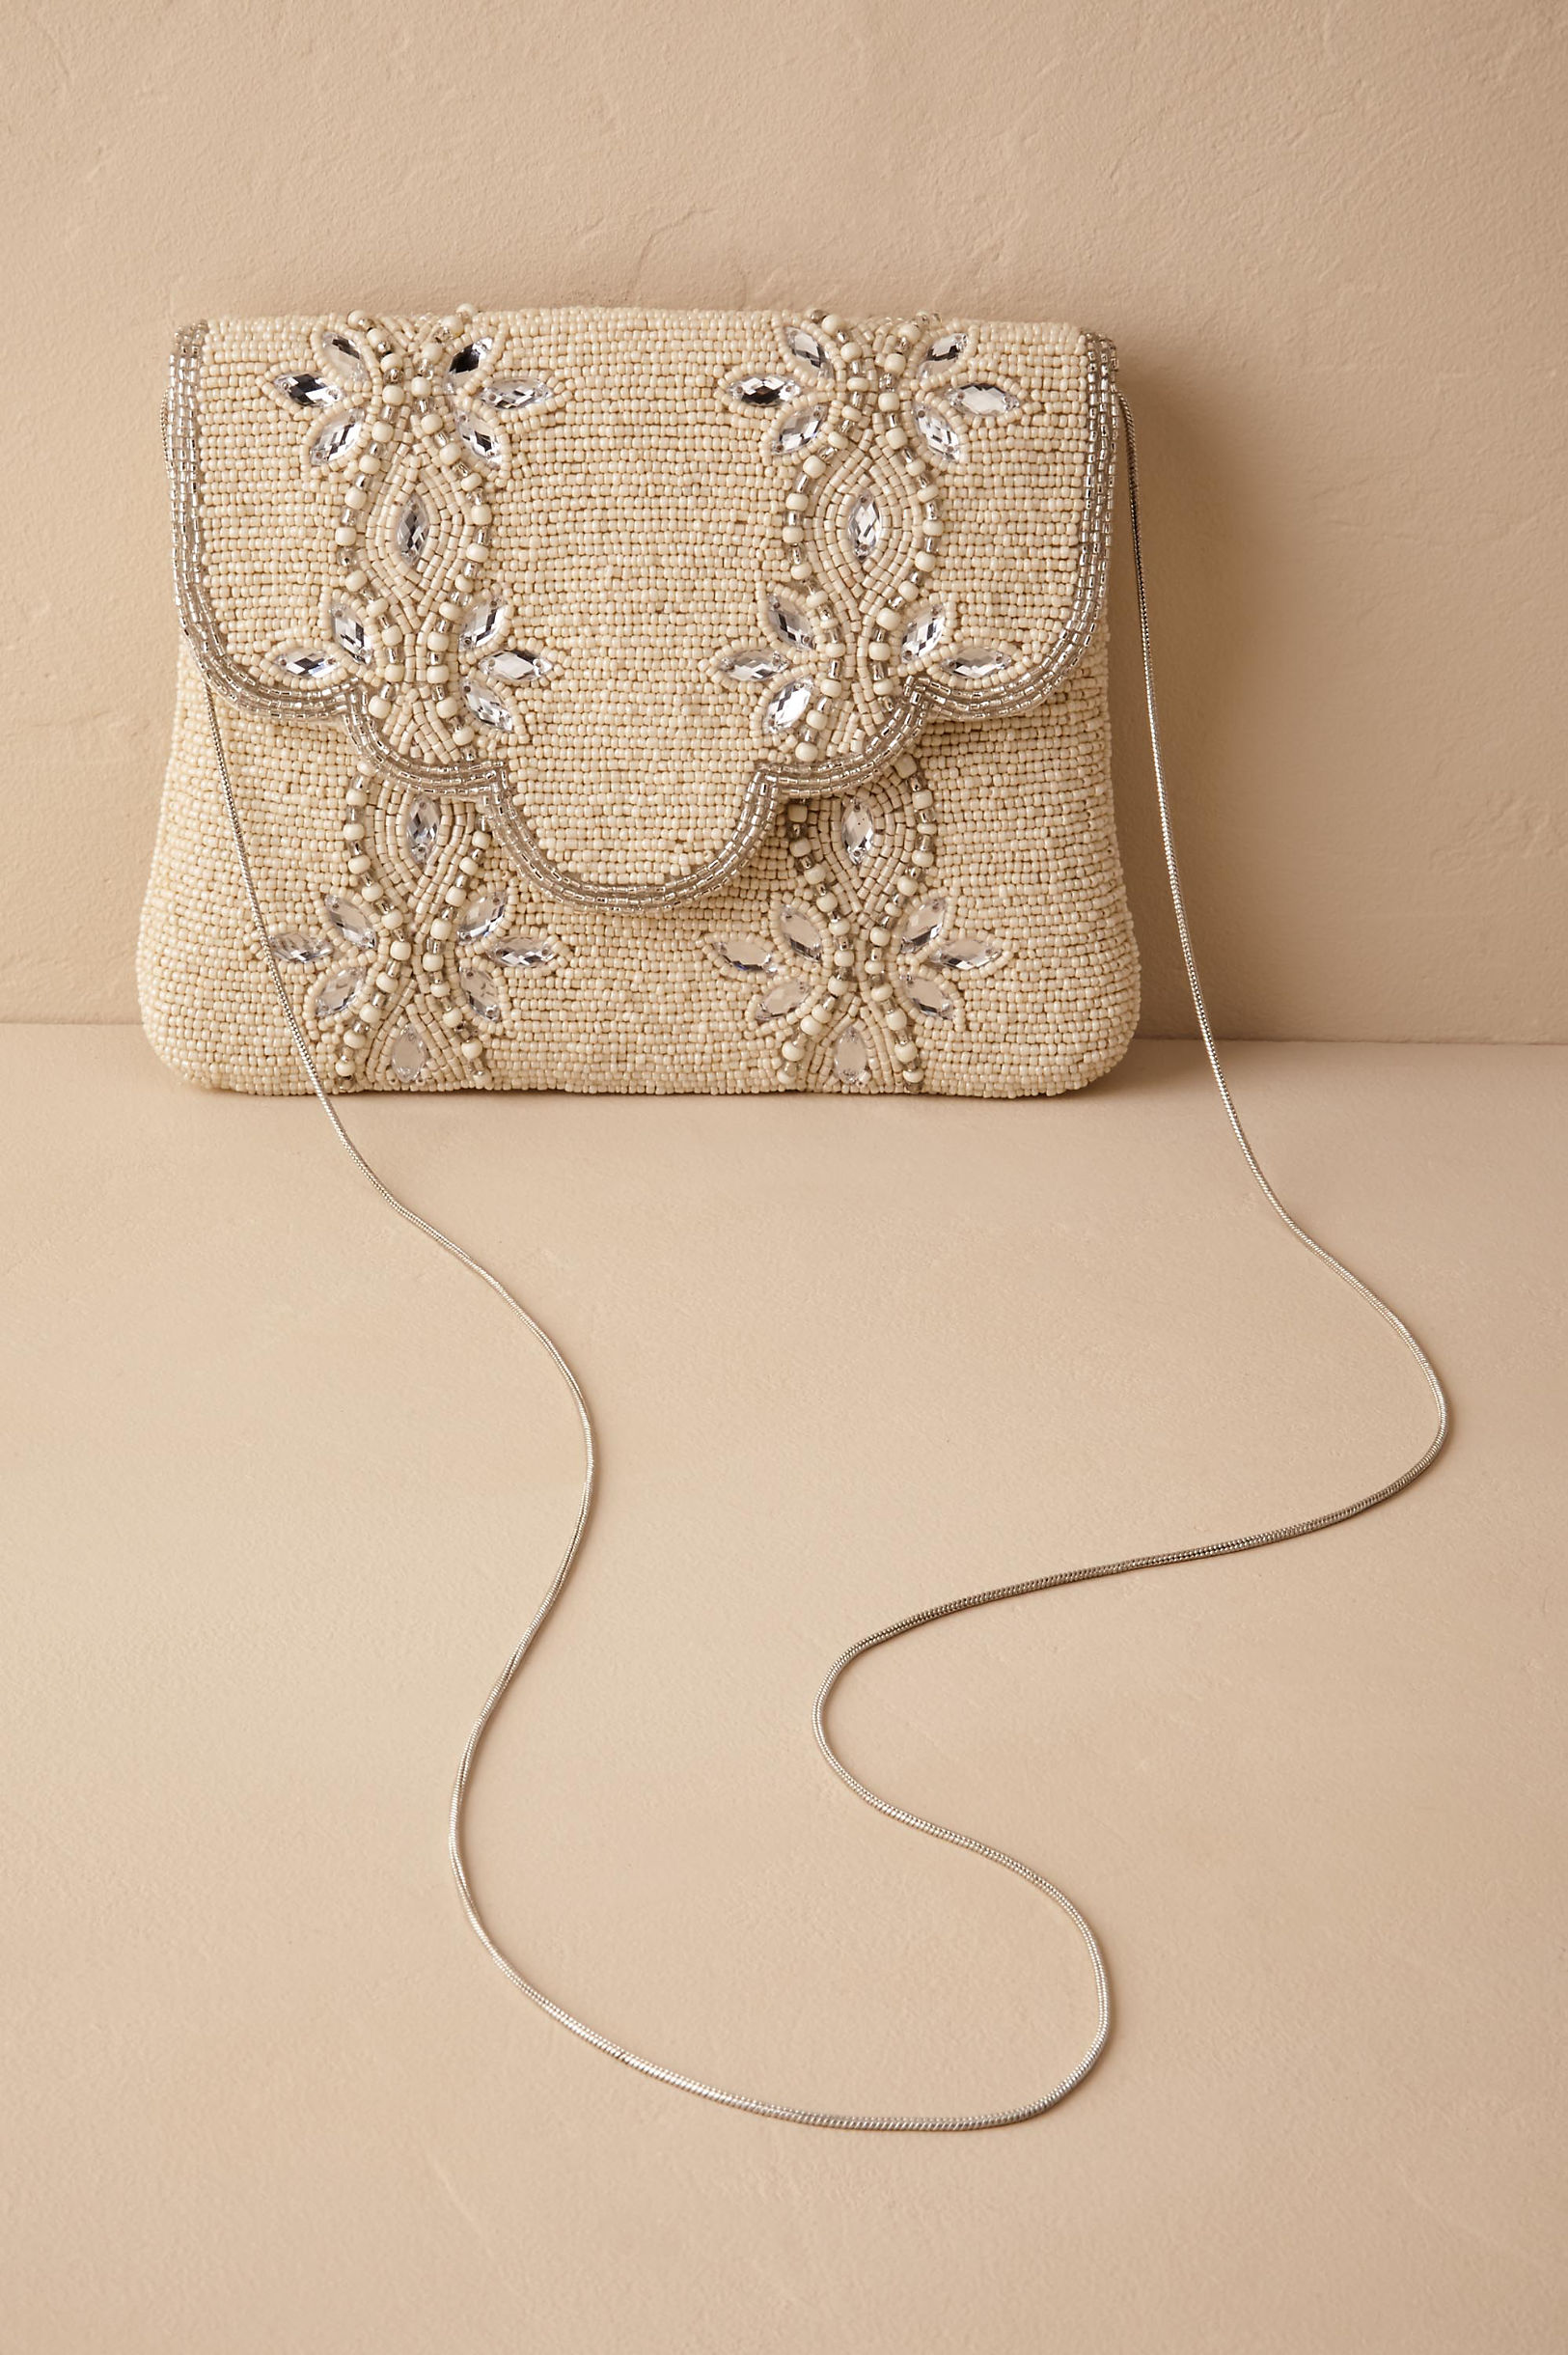 1920s Style Purses, Flapper Bags, Handbags Taney Clutch $140.00 AT vintagedancer.com